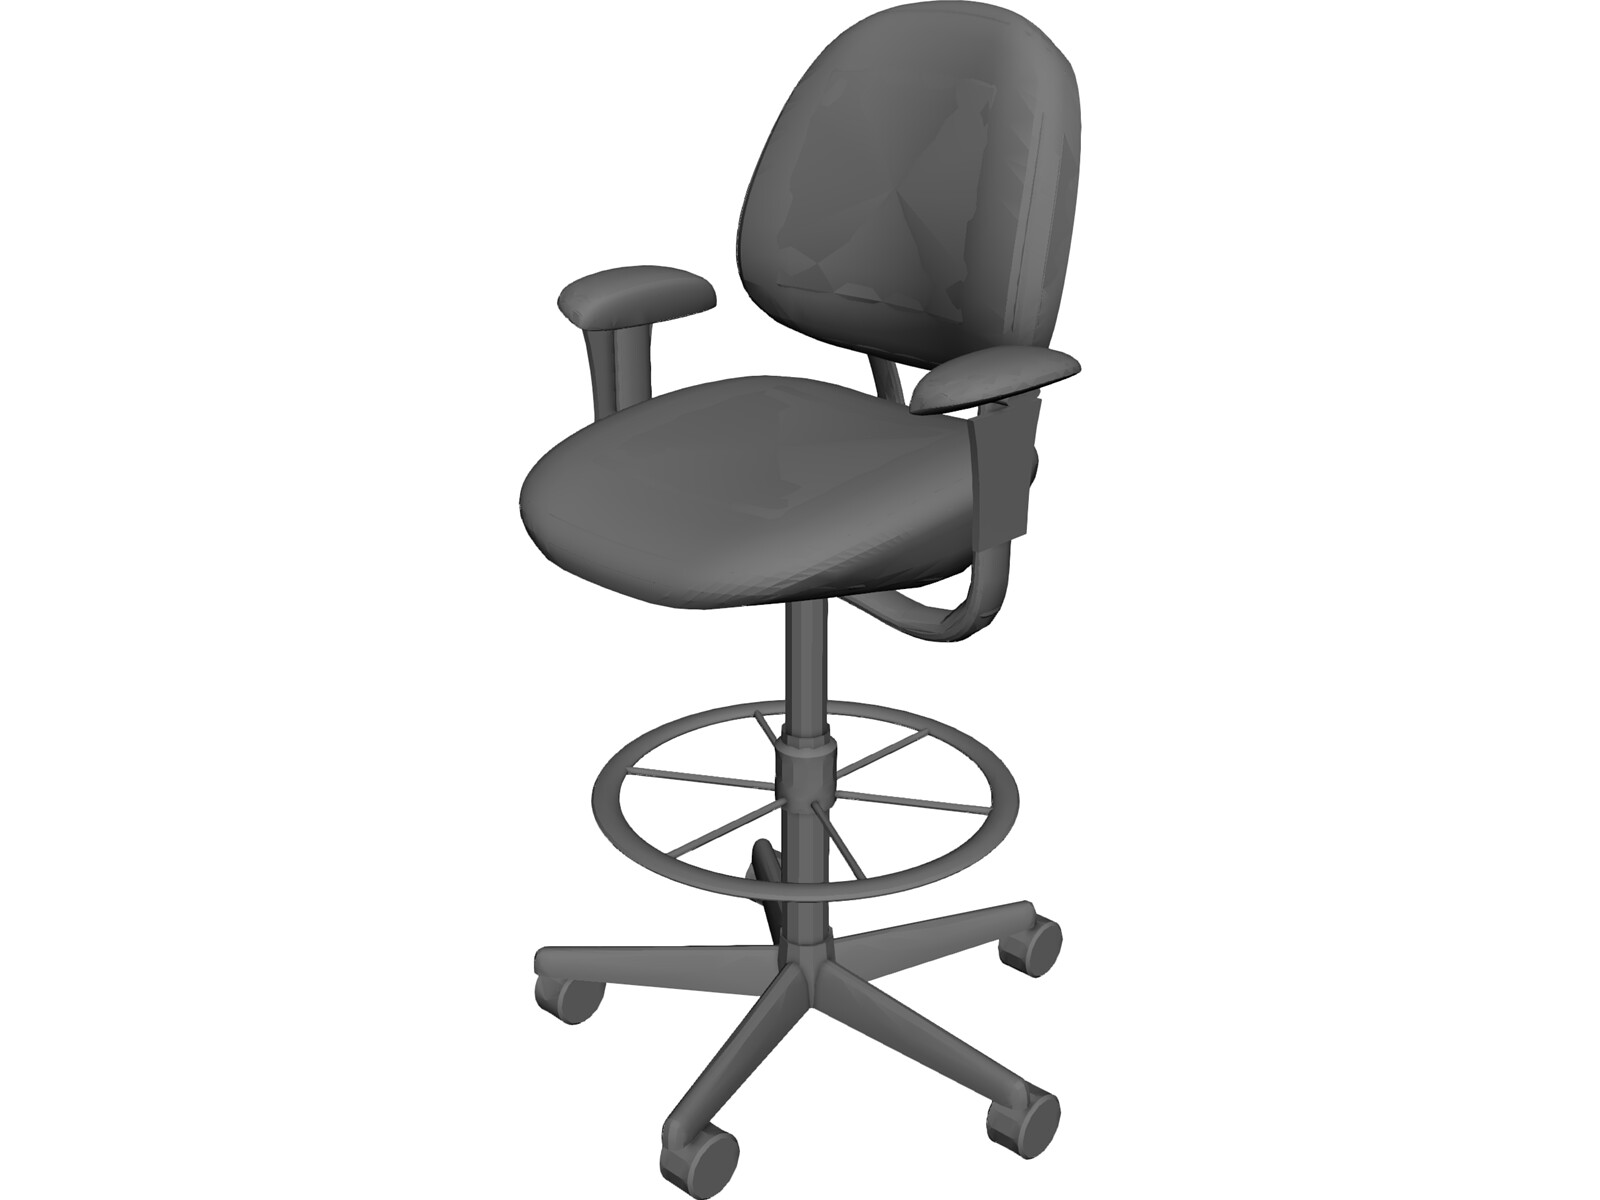 office chair 3d model woven hanging cad browser